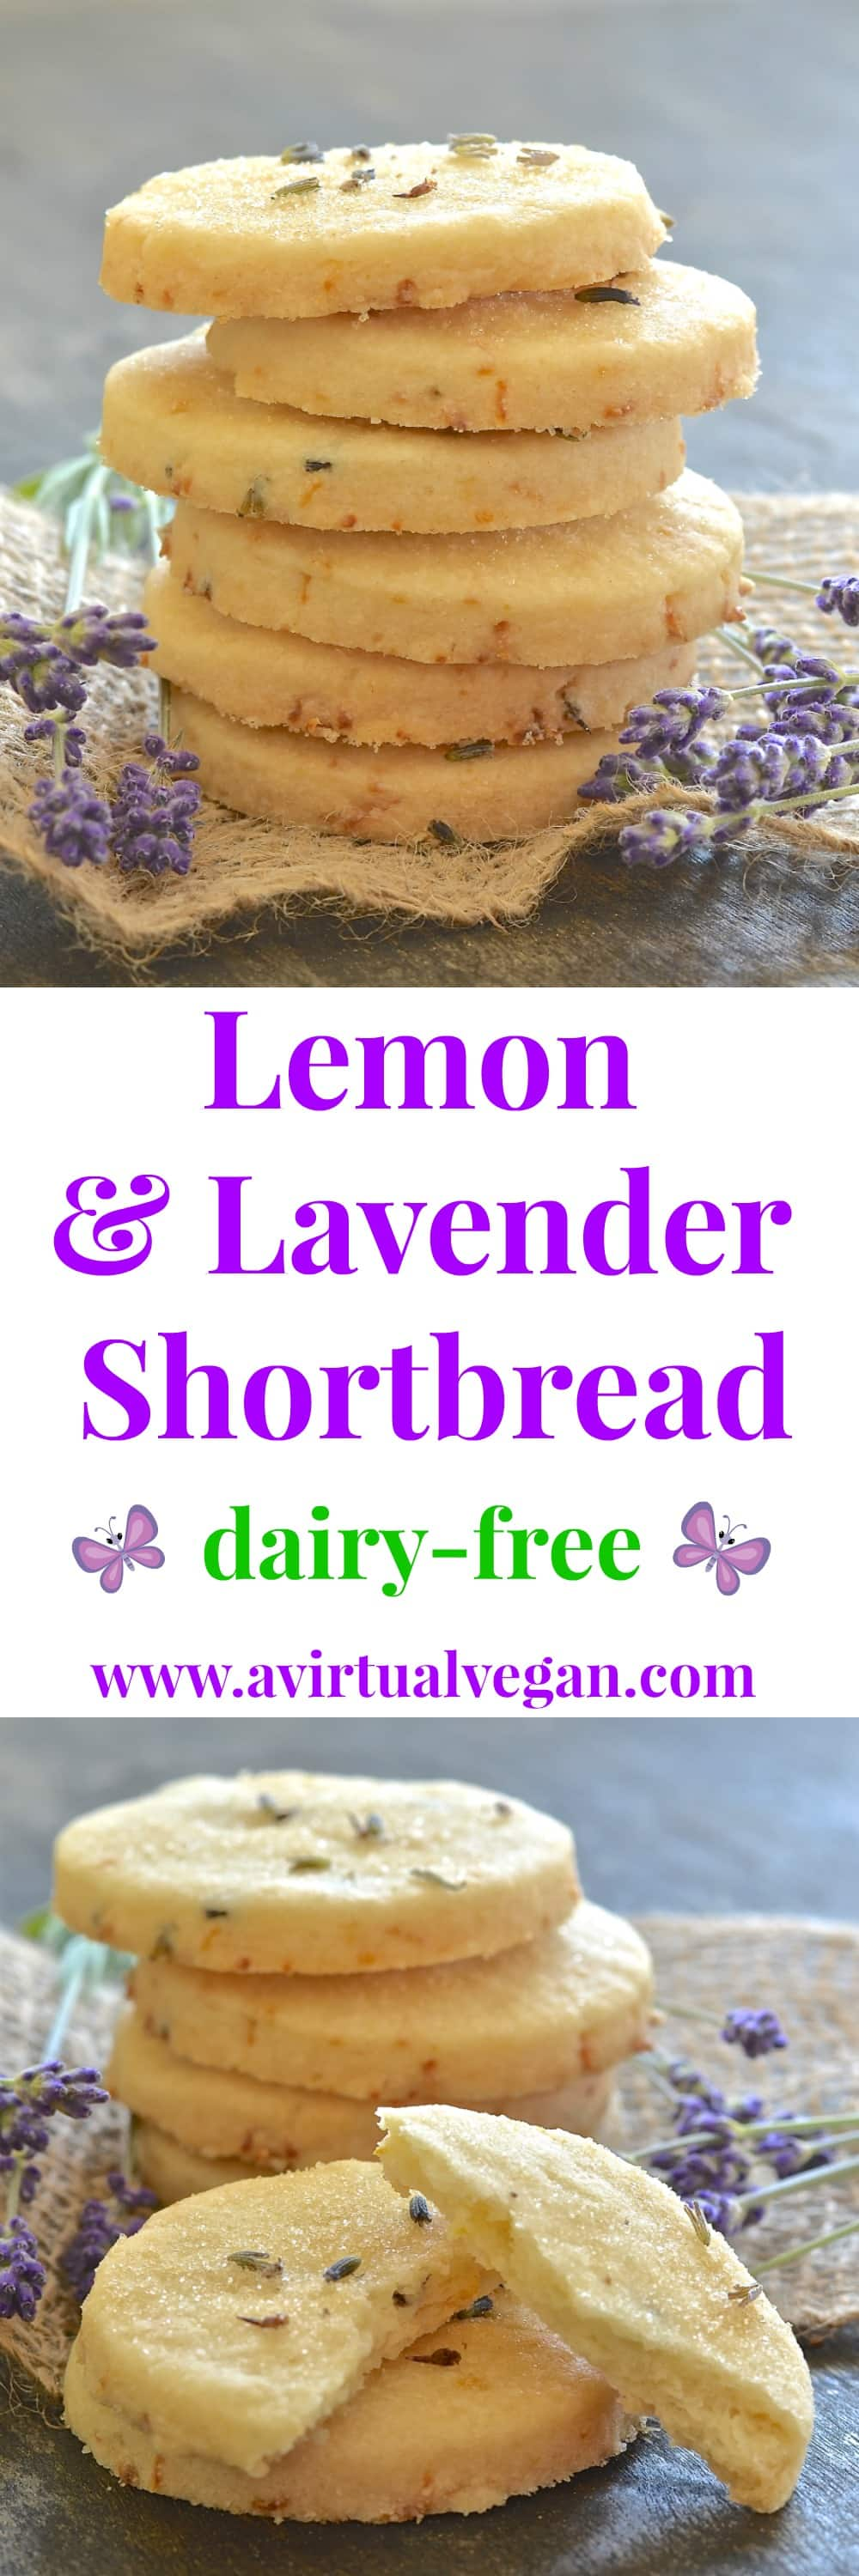 This beautifully rich Lemon Lavender Shortbread is full of zesty lemon flavour with delicious subtle bursts of floral lavender in every bite. It literally melts in your mouth and has perfect shortbread